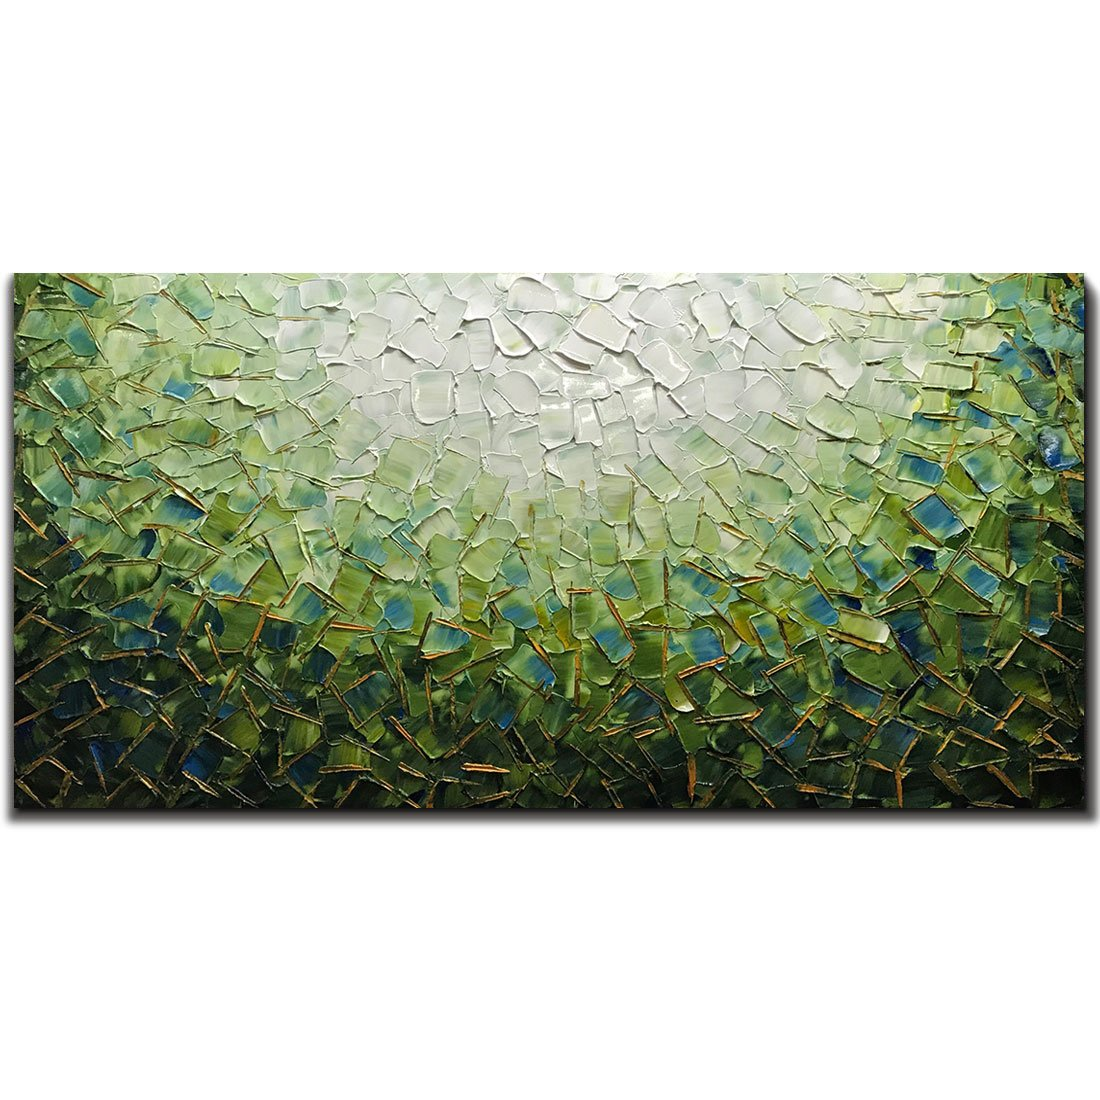 Yotree Paintings, 24x48 Inch Paintings Oil Hand Painting Painting 3D Hand-Painted On Canvas Abstract Artwork Art Wood Inside Framed Hanging Wall Decoration Green Teal Abstract Painting by Yotree